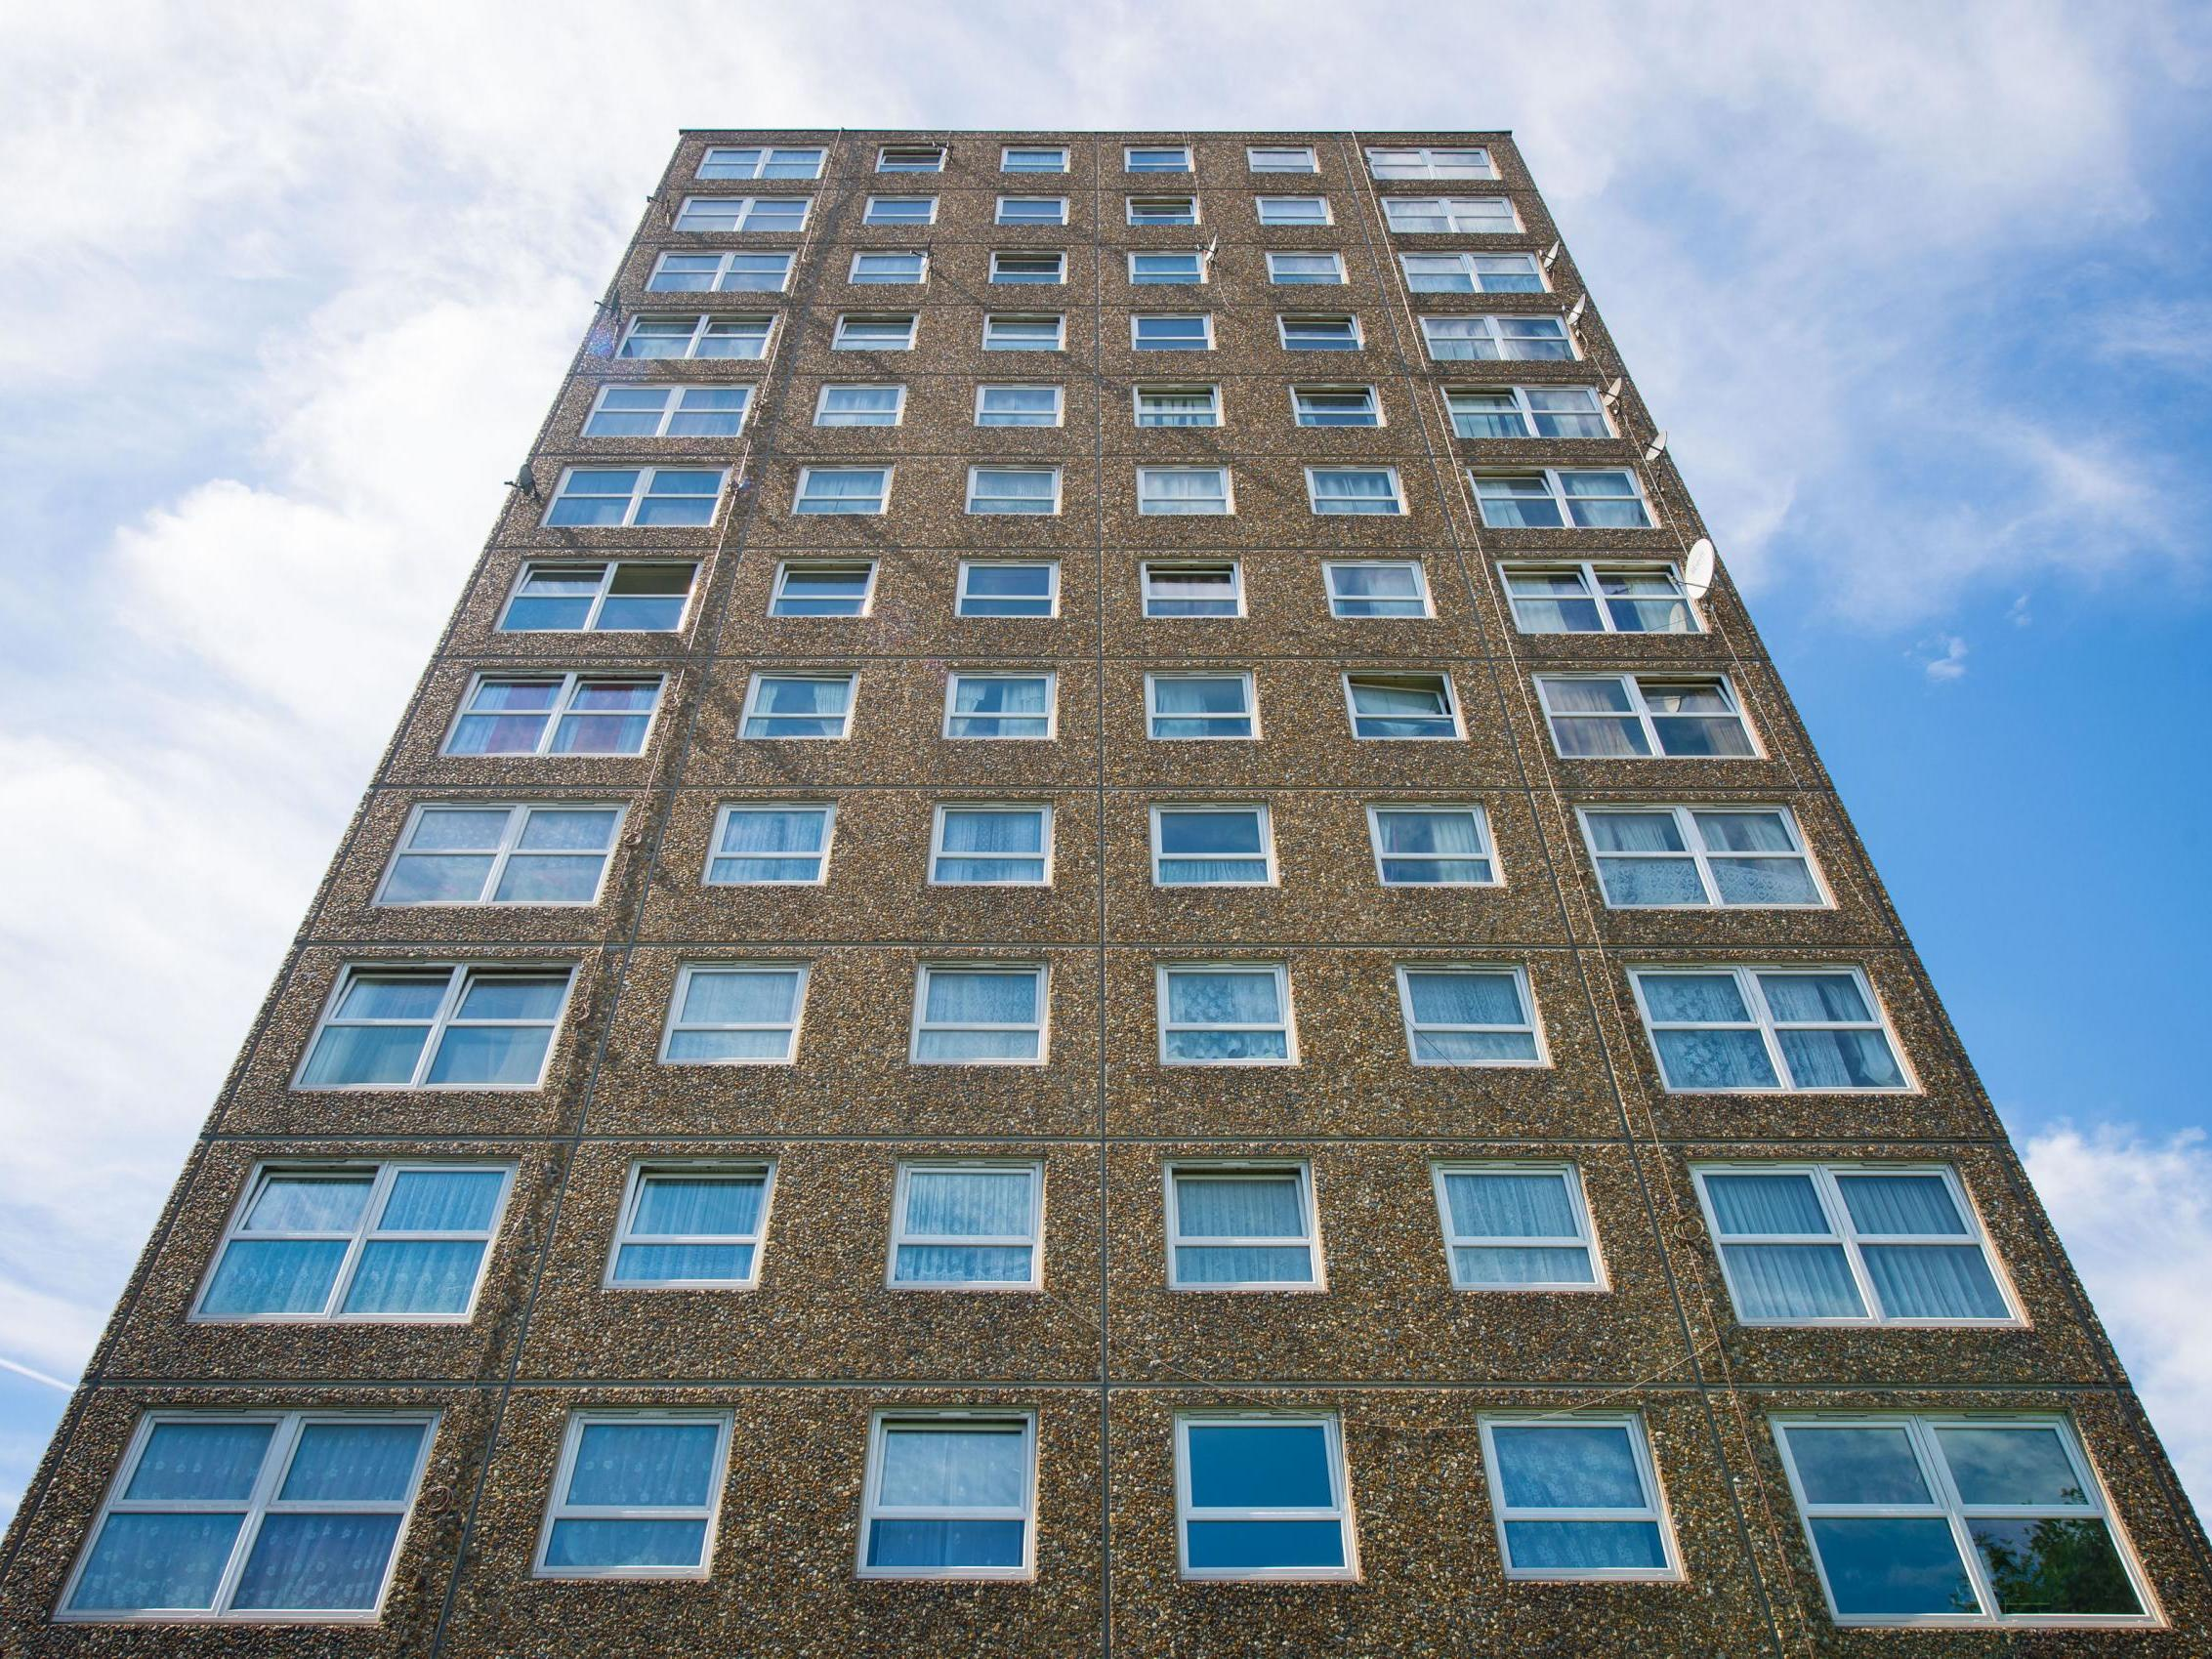 Hundreds of tower blocks across UK at risk of collapse, say experts